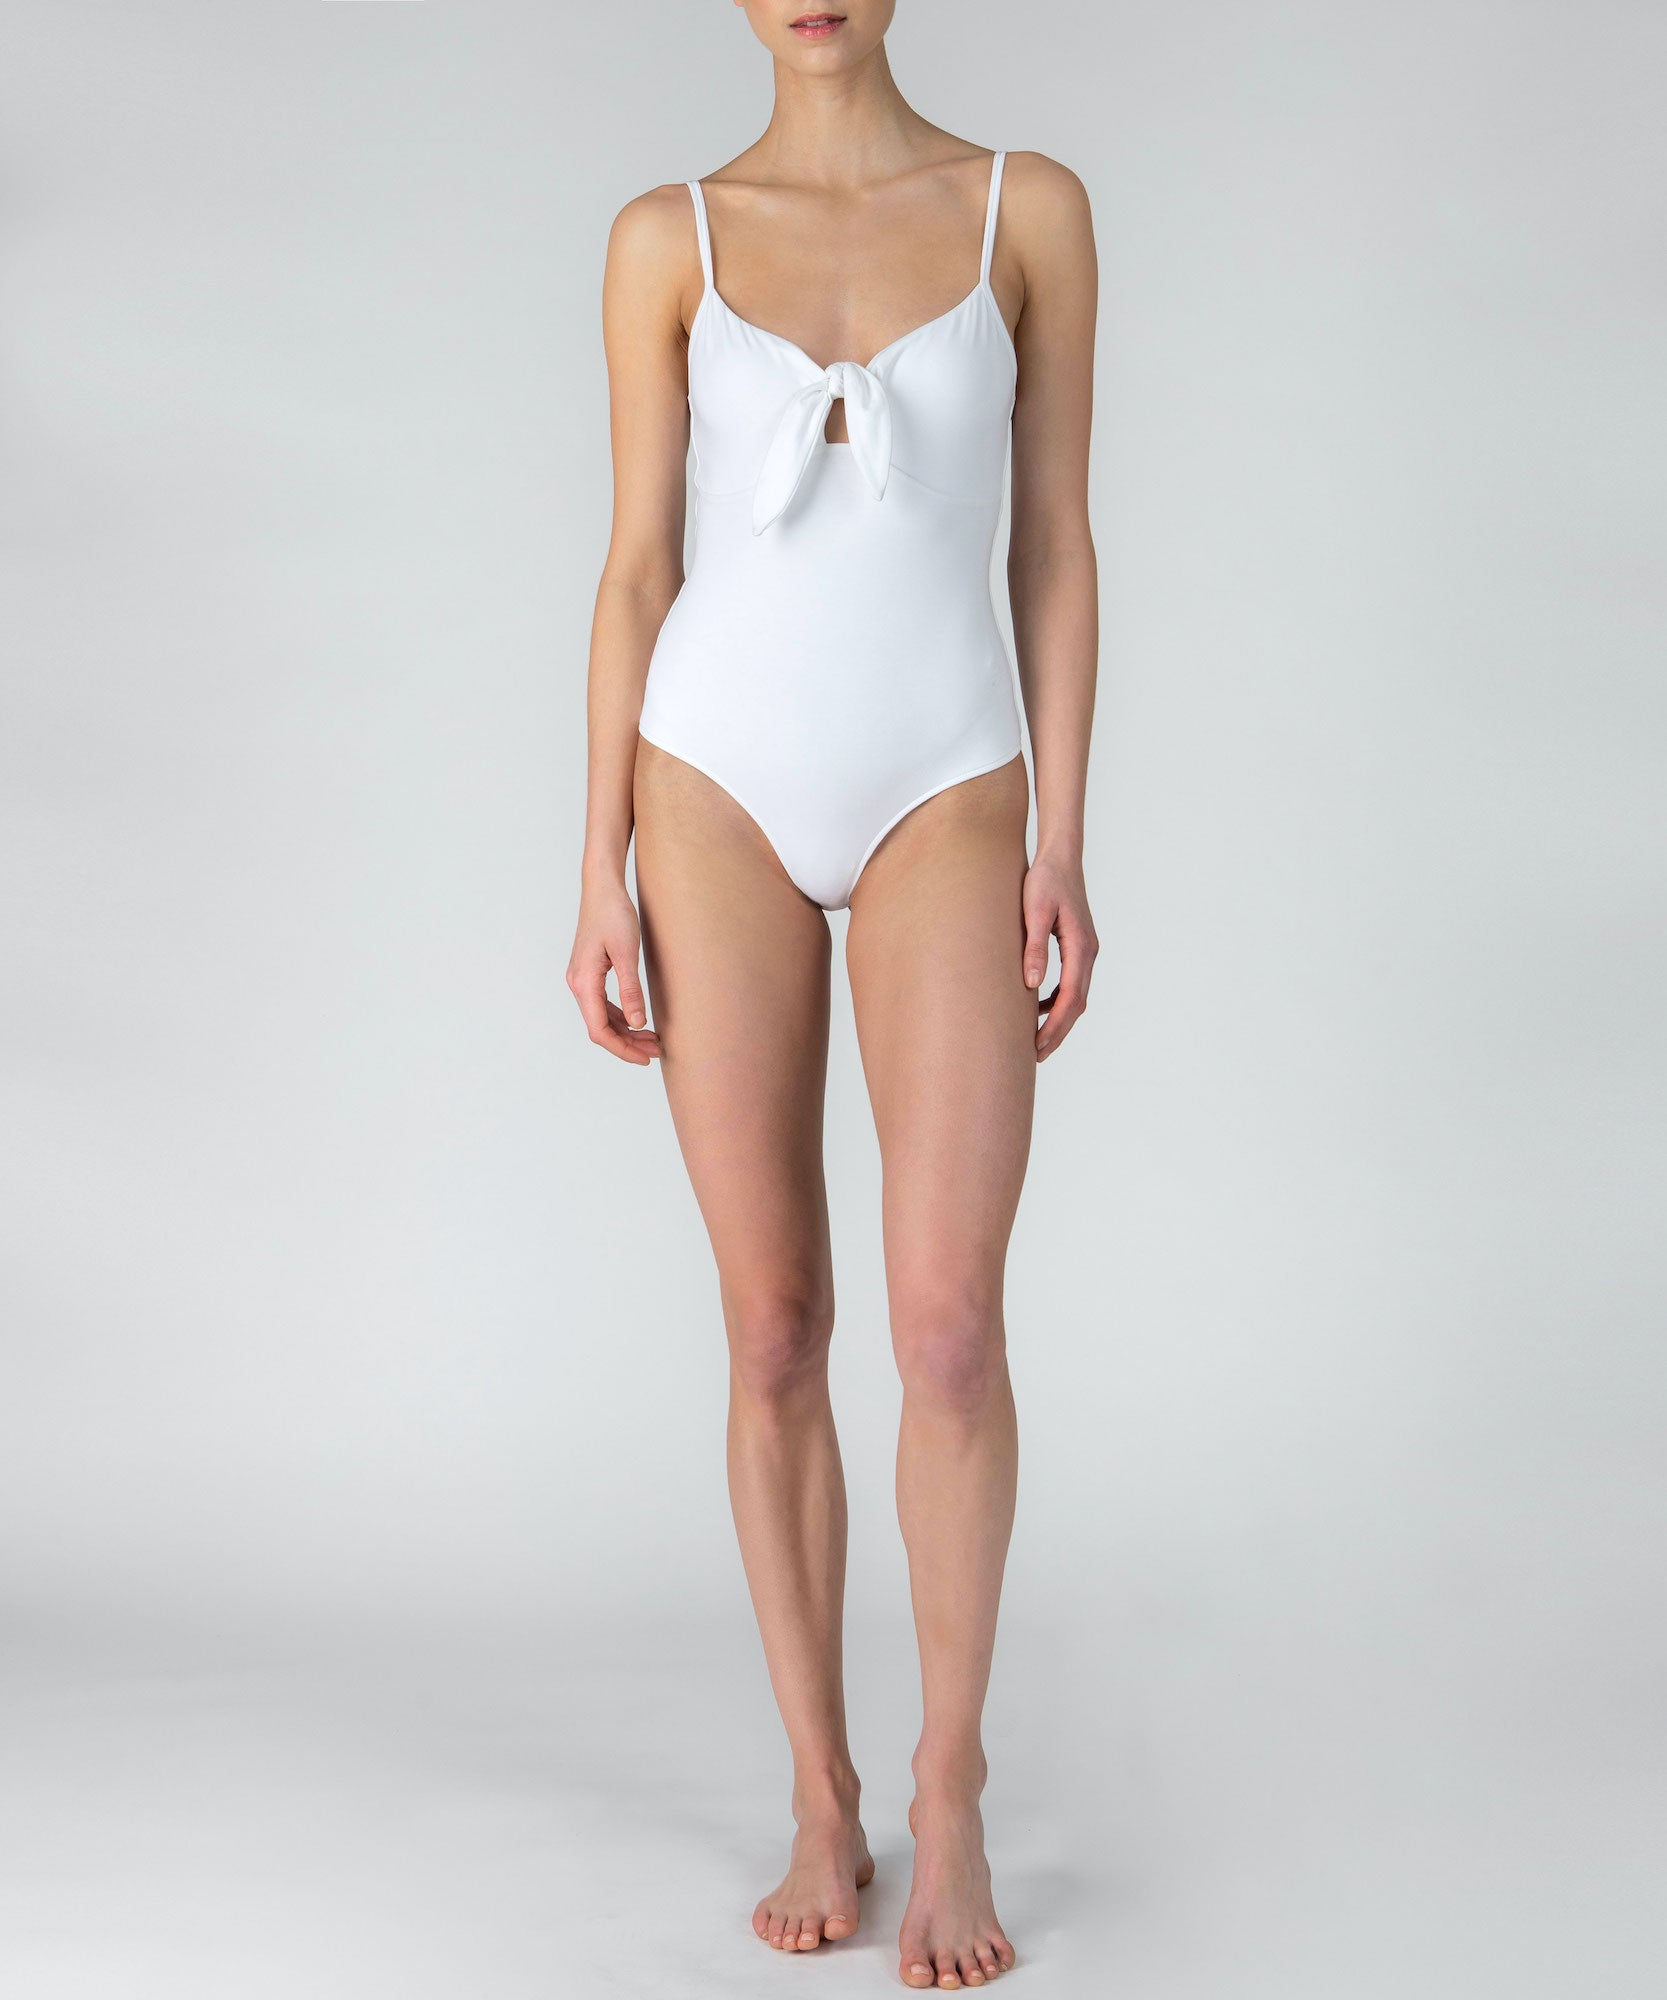 White Pima Cotton Knot Front Bodysuit - Women's Ribbed Bodysuit by ATM Anthony Thomas Melillo